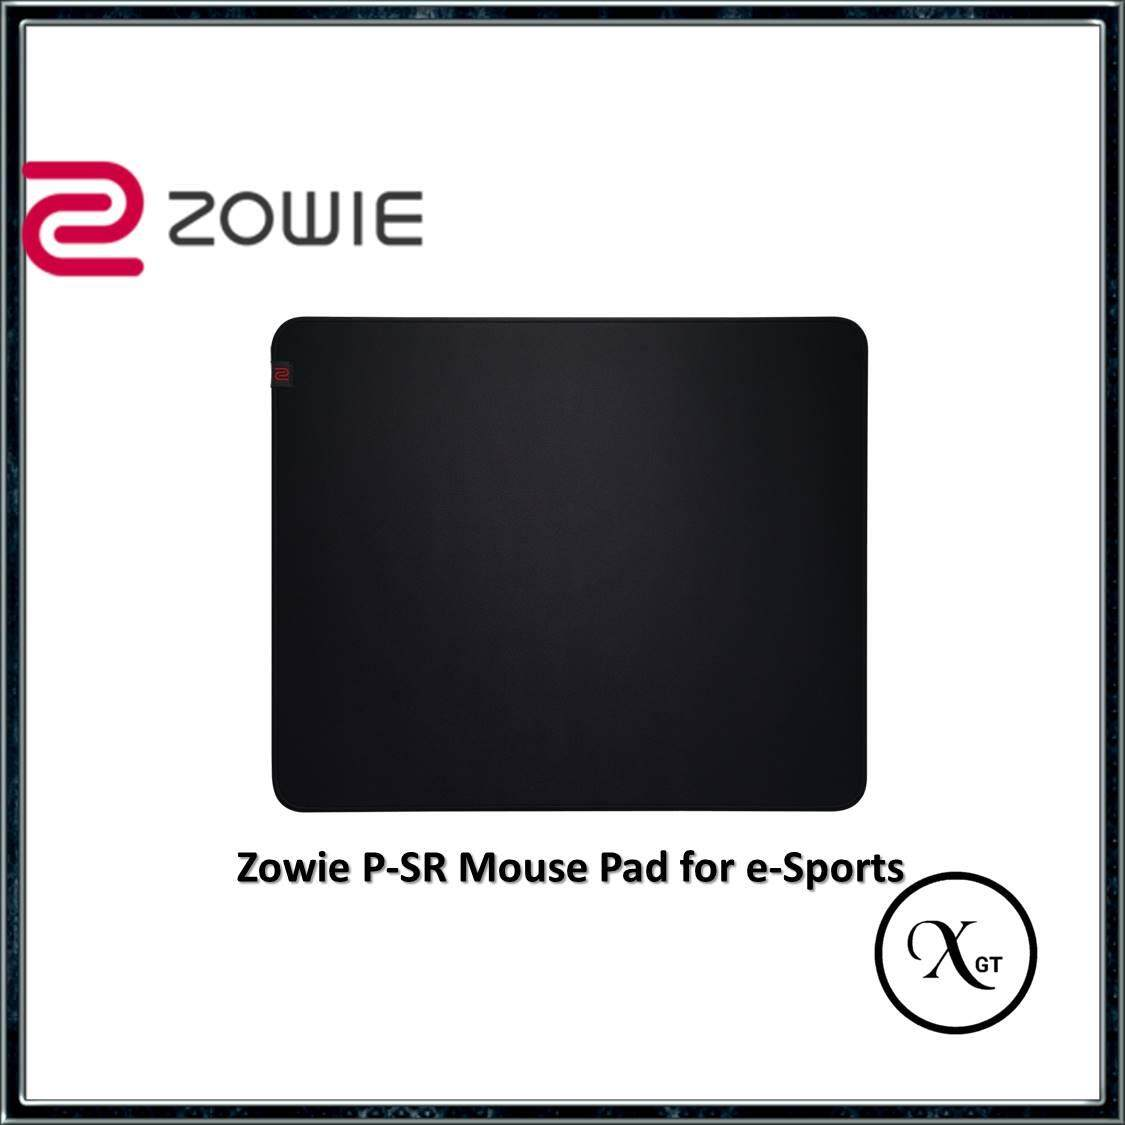 [XGT] ZOWIE P-SR Mouse Pad for e-Sports Malaysia